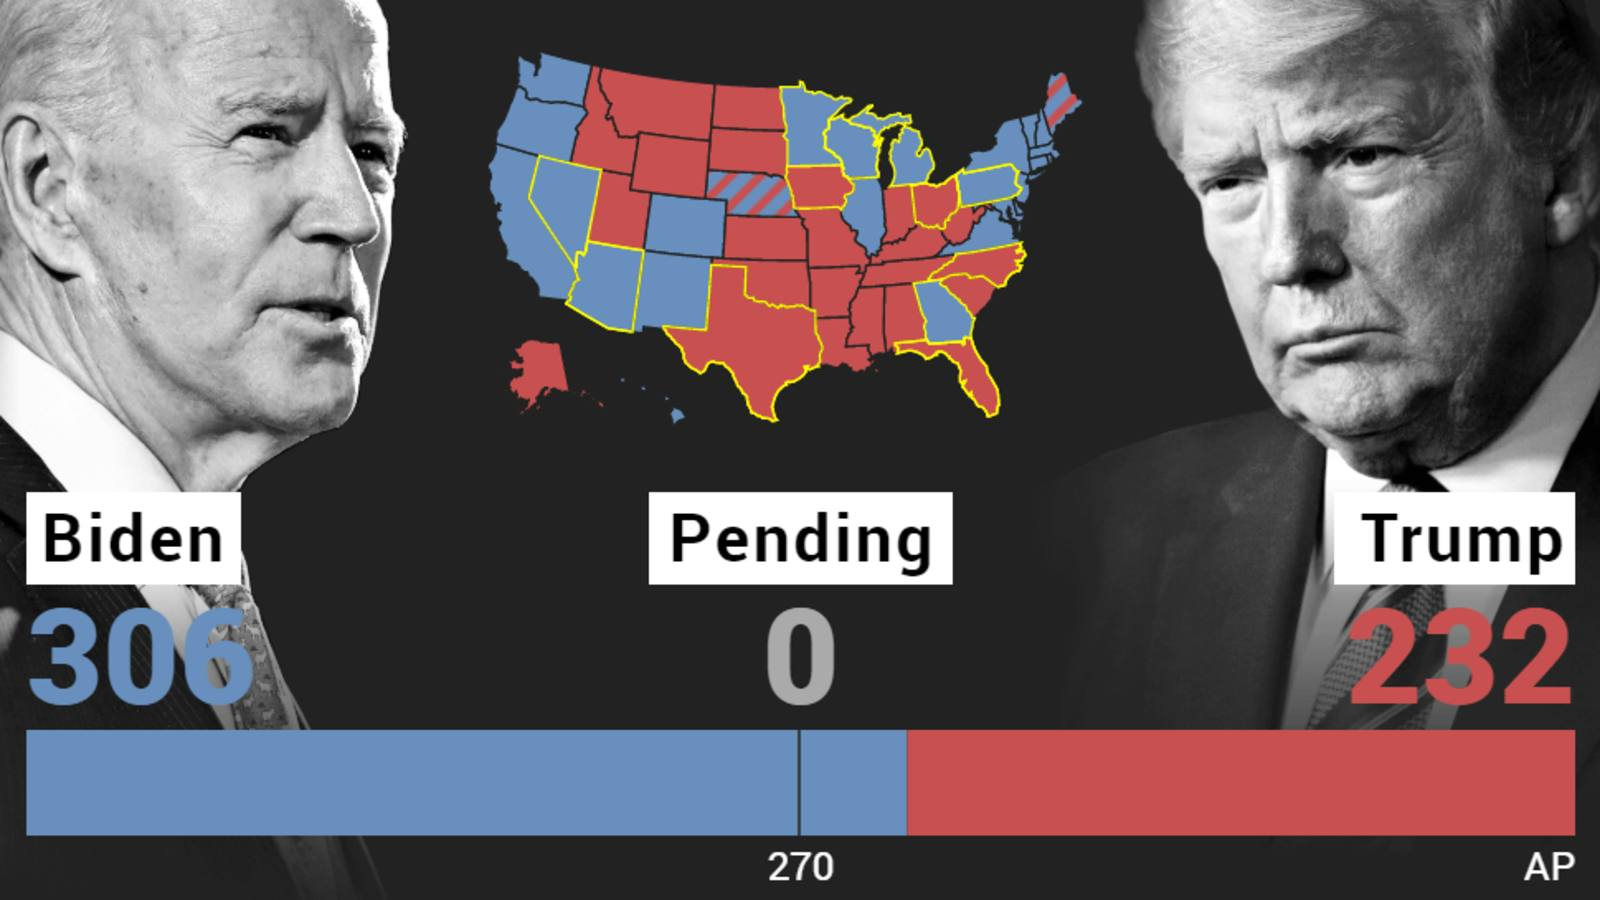 Live coverage of election online betting the getaway aiding and abetting federal statute